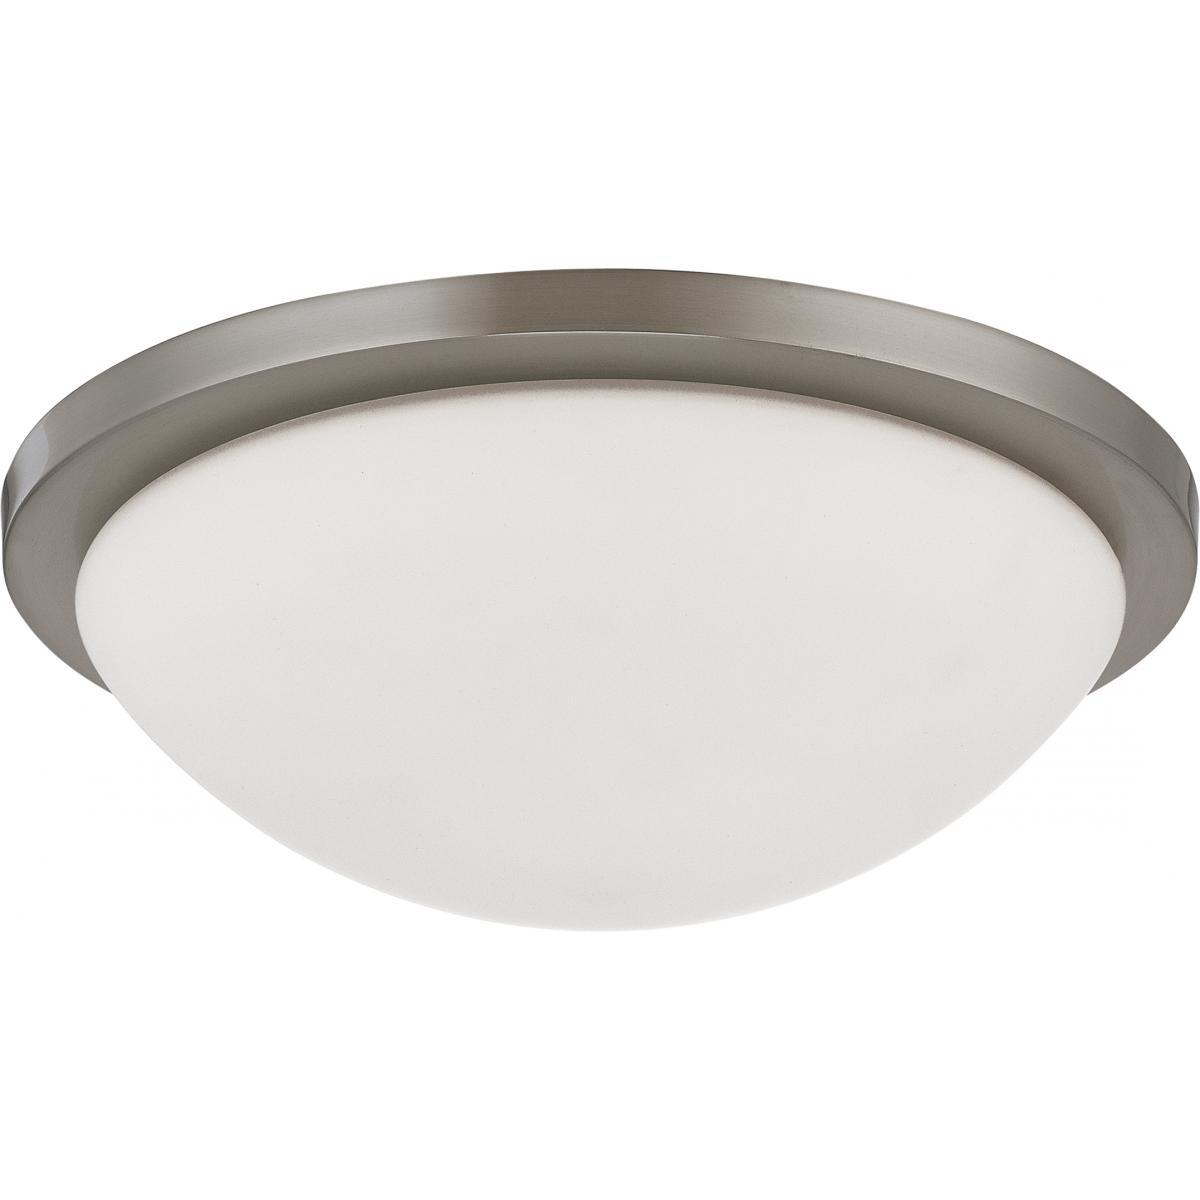 "Button LED 13"" Flush Mount Fixture Brushed Nickel Finish Lamps Included Ceiling Nuvo Lighting"